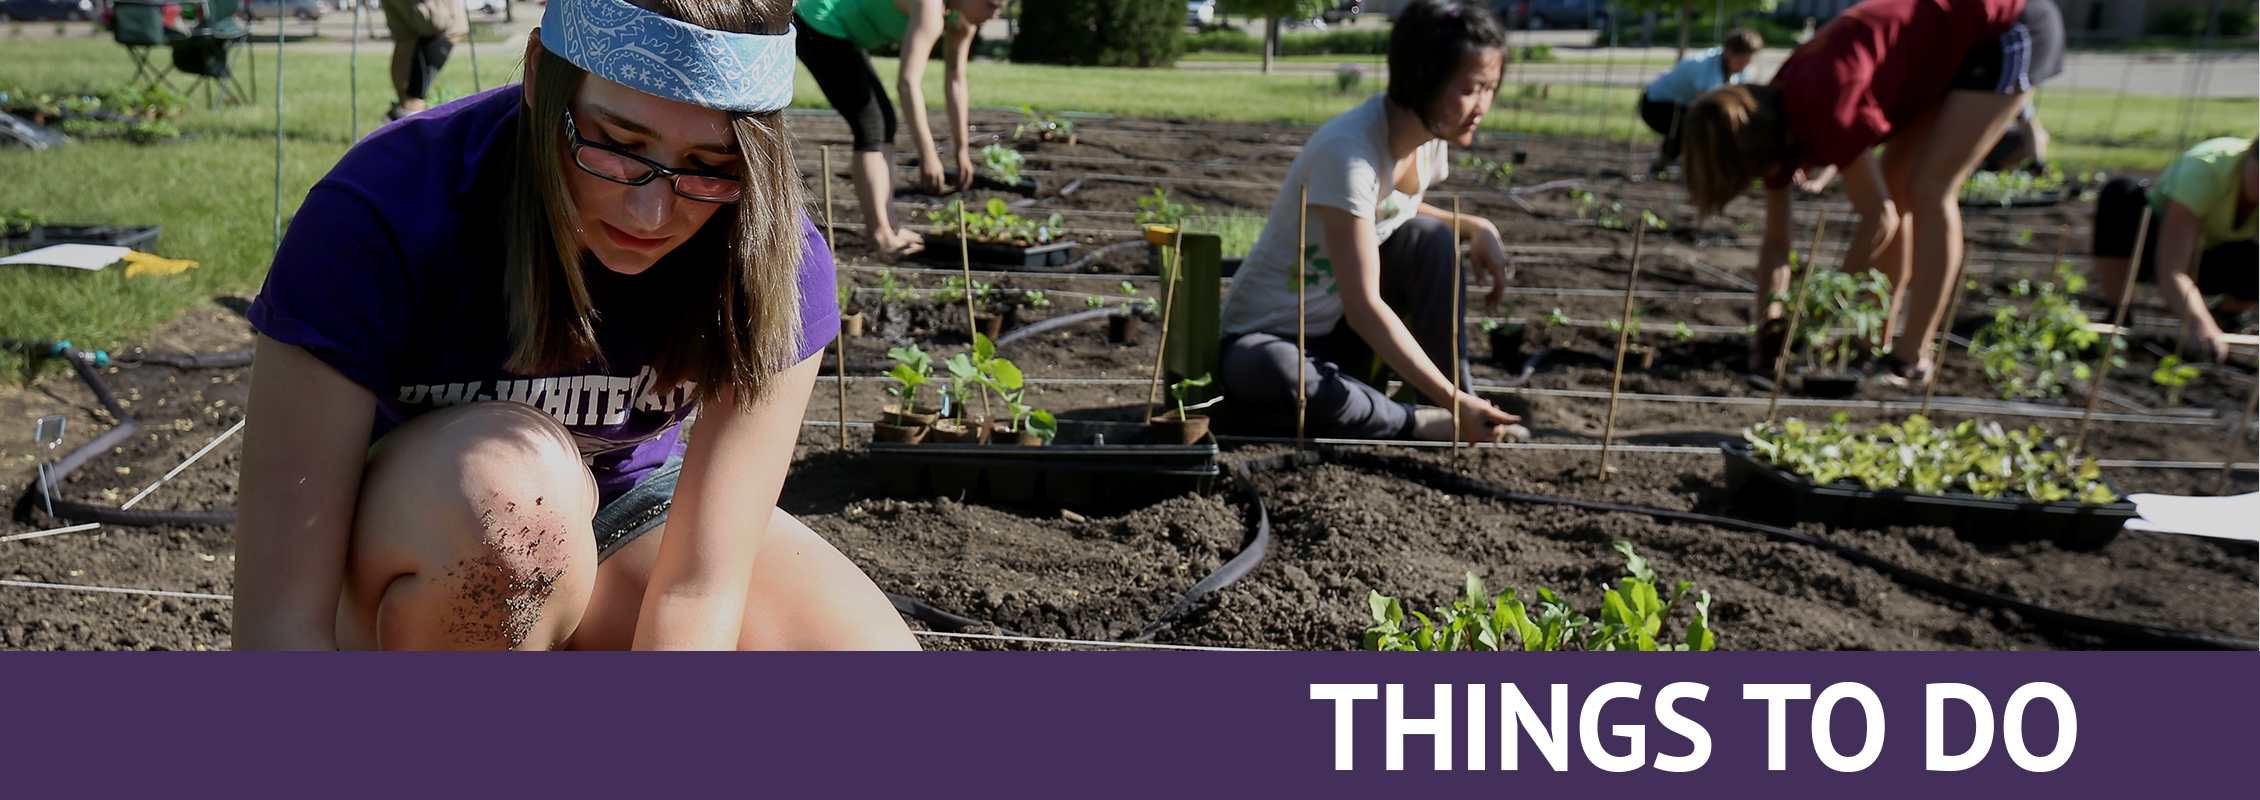 Community Resources: Students planting in a garden